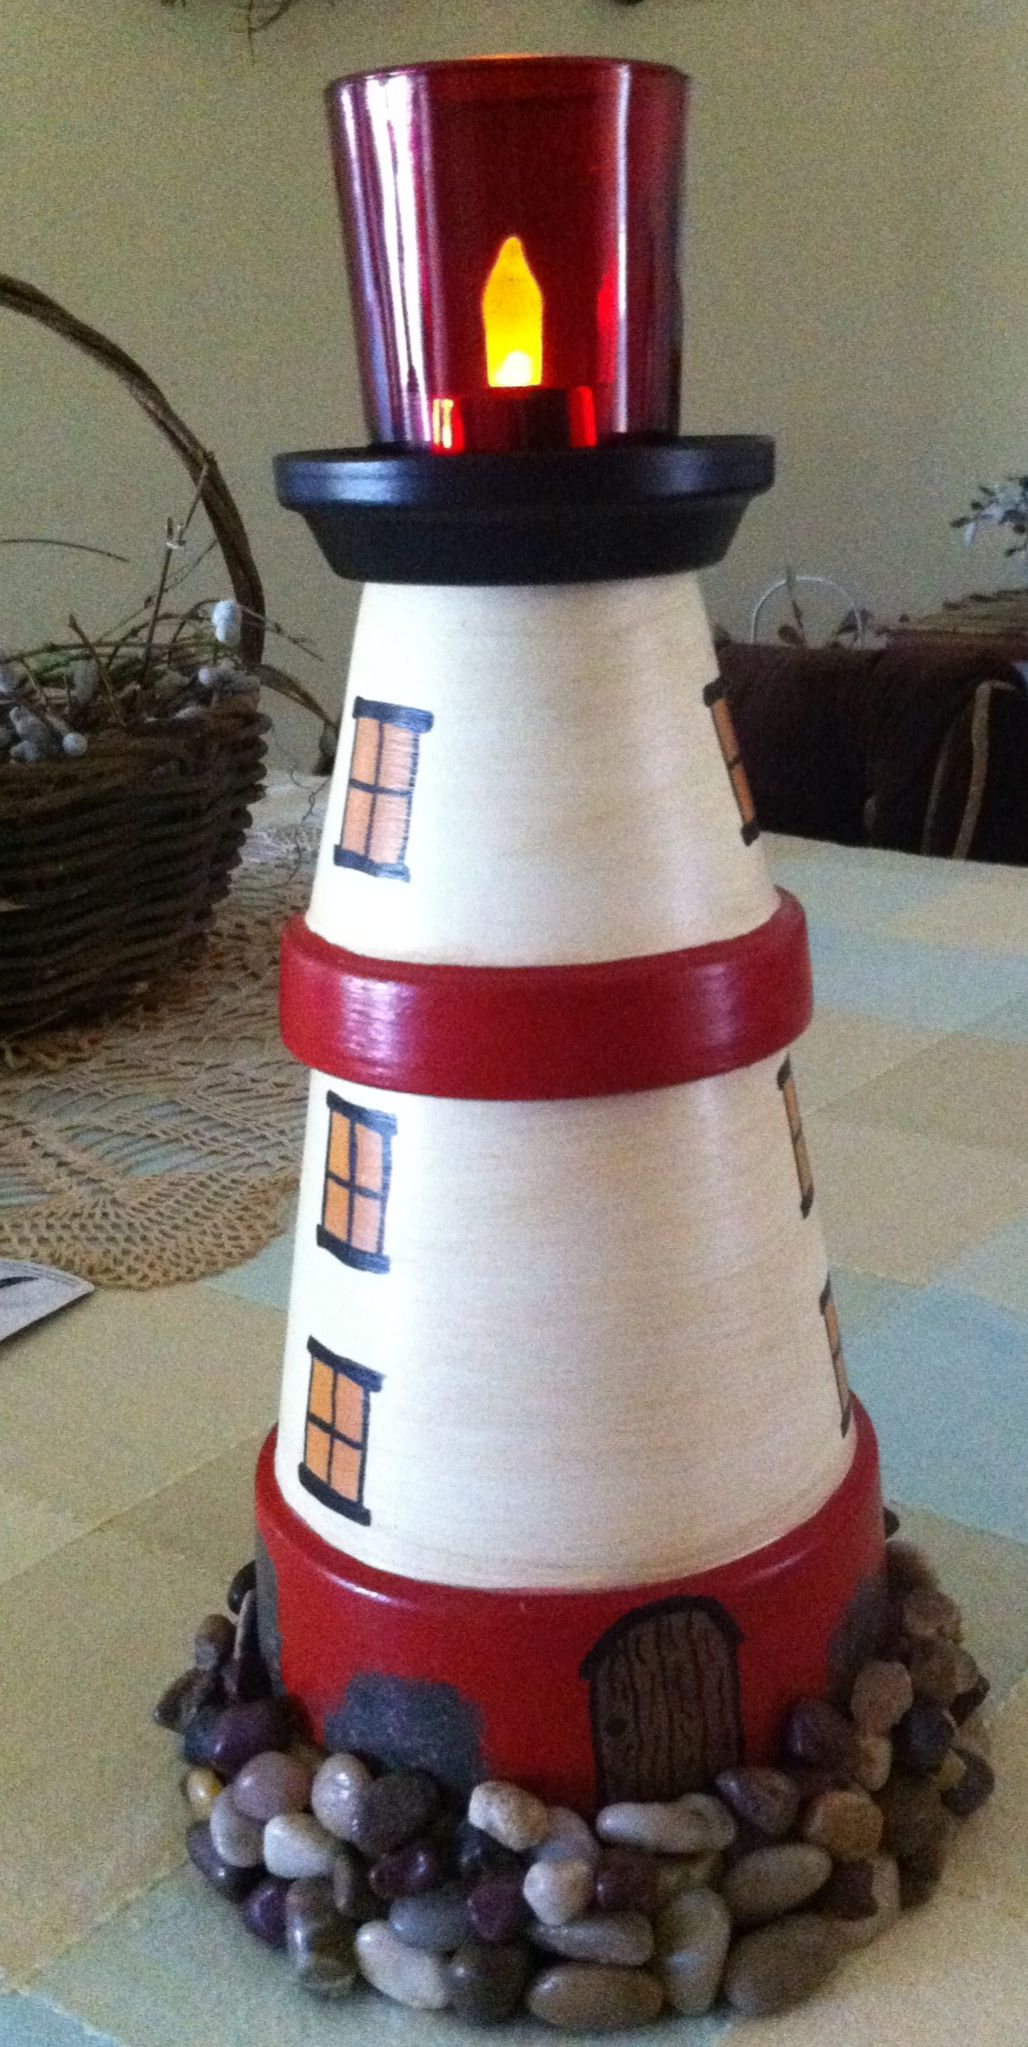 Crafts with clay pots - Definitely On My List Of Winter Projects Terra Cotta Pot Lighthouse Going To Turn It Into A Christmas Lighthouse